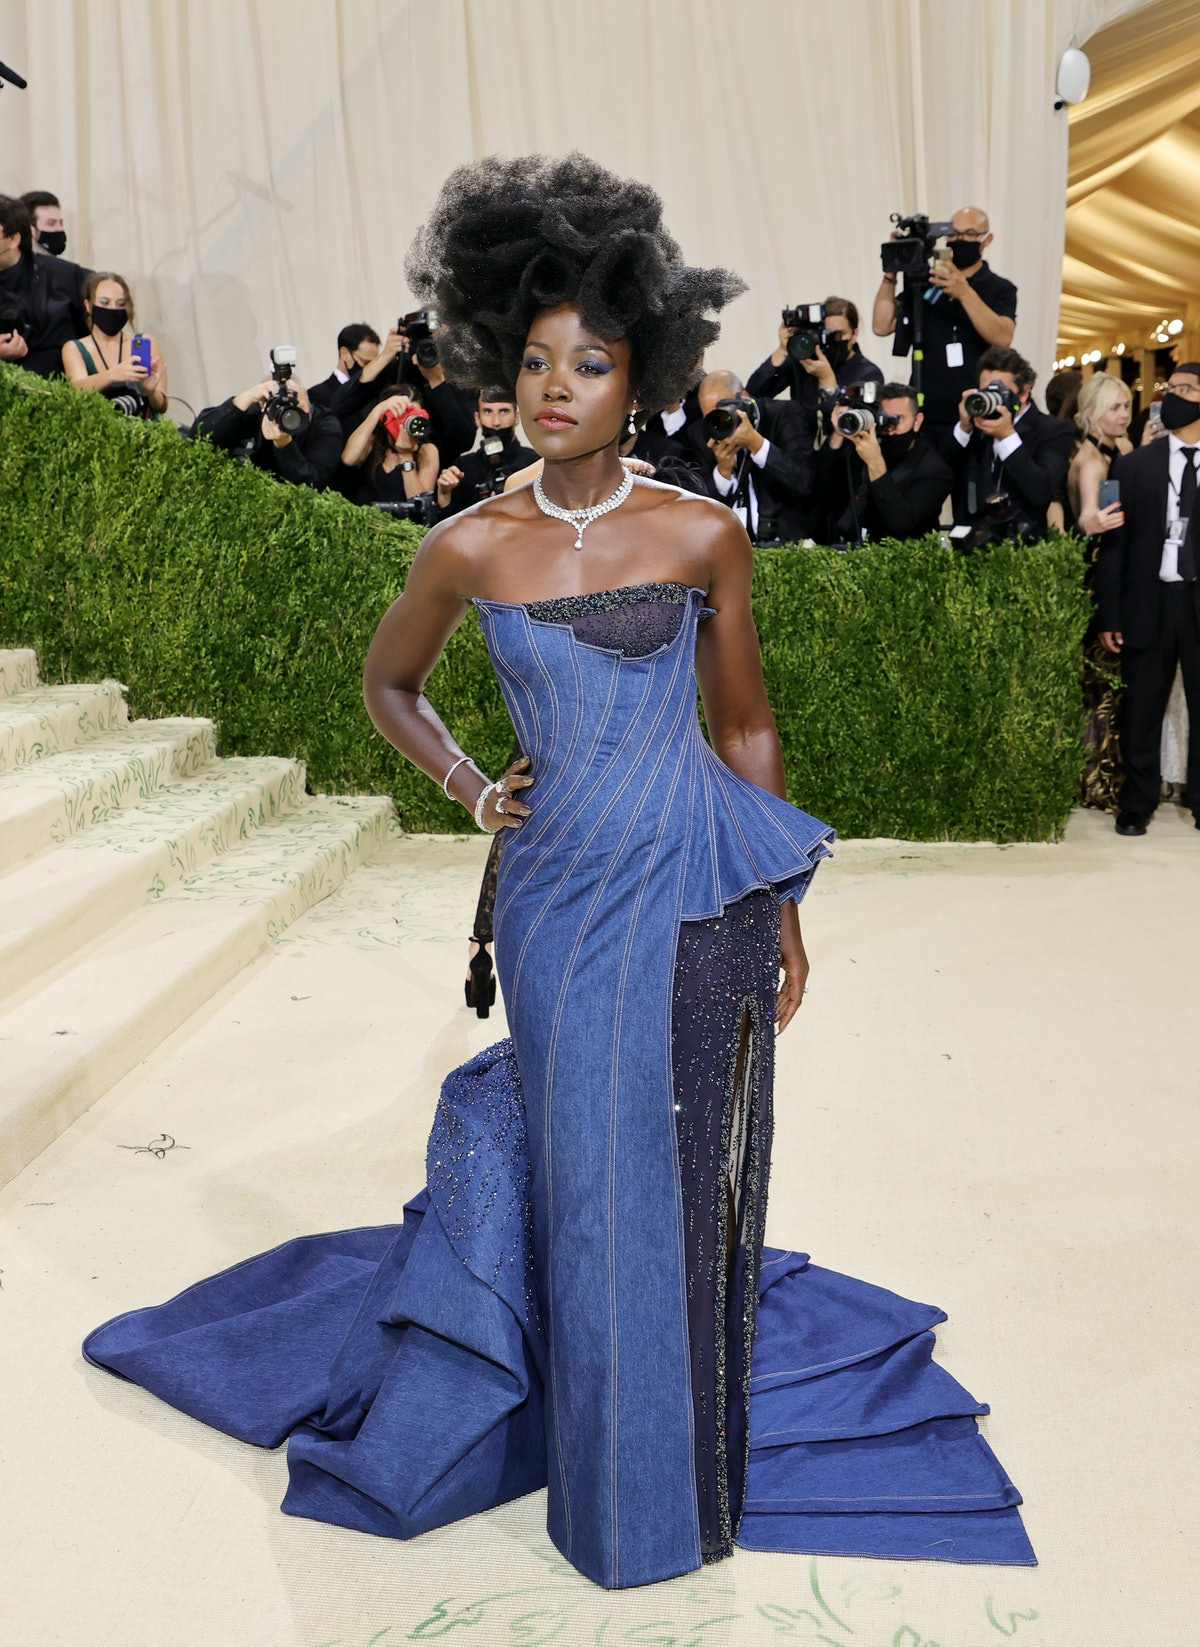 Lupita Nyong'o attends The 2021 Met Gala Celebrating In America: A Lexicon Of Fashion at Metropolita...